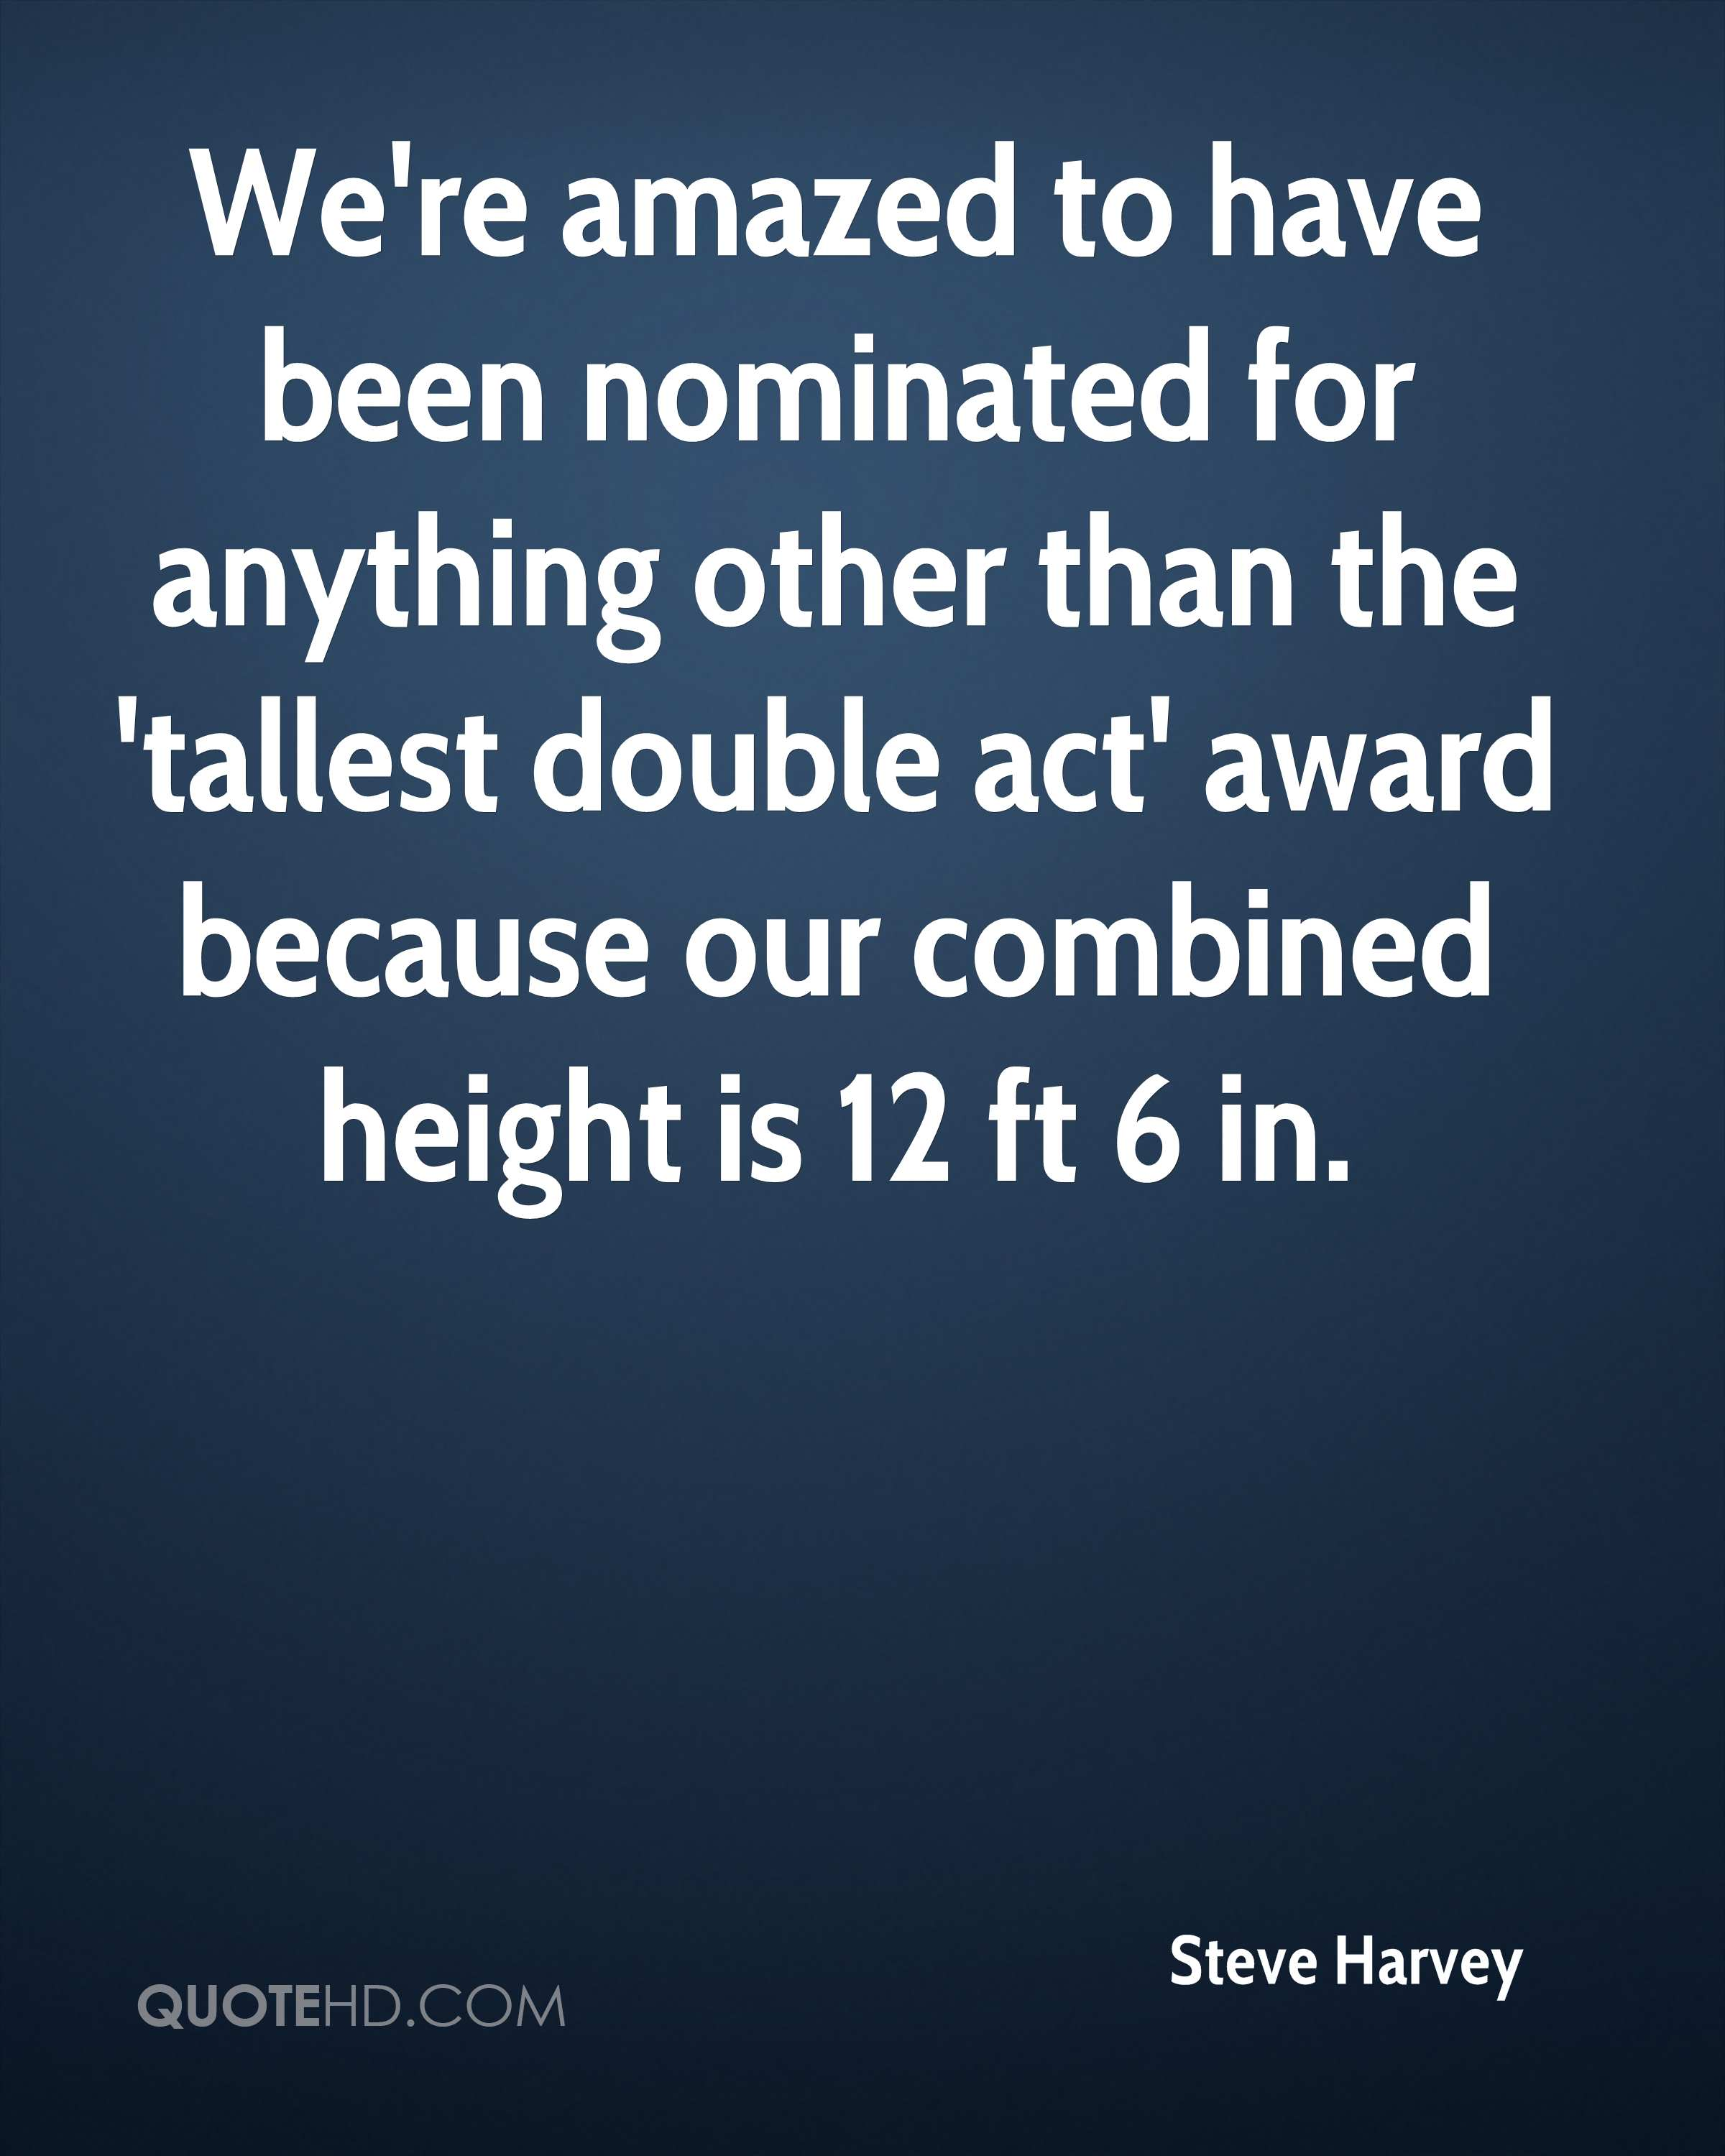 We're amazed to have been nominated for anything other than the 'tallest double act' award because our combined height is 12 ft 6 in.